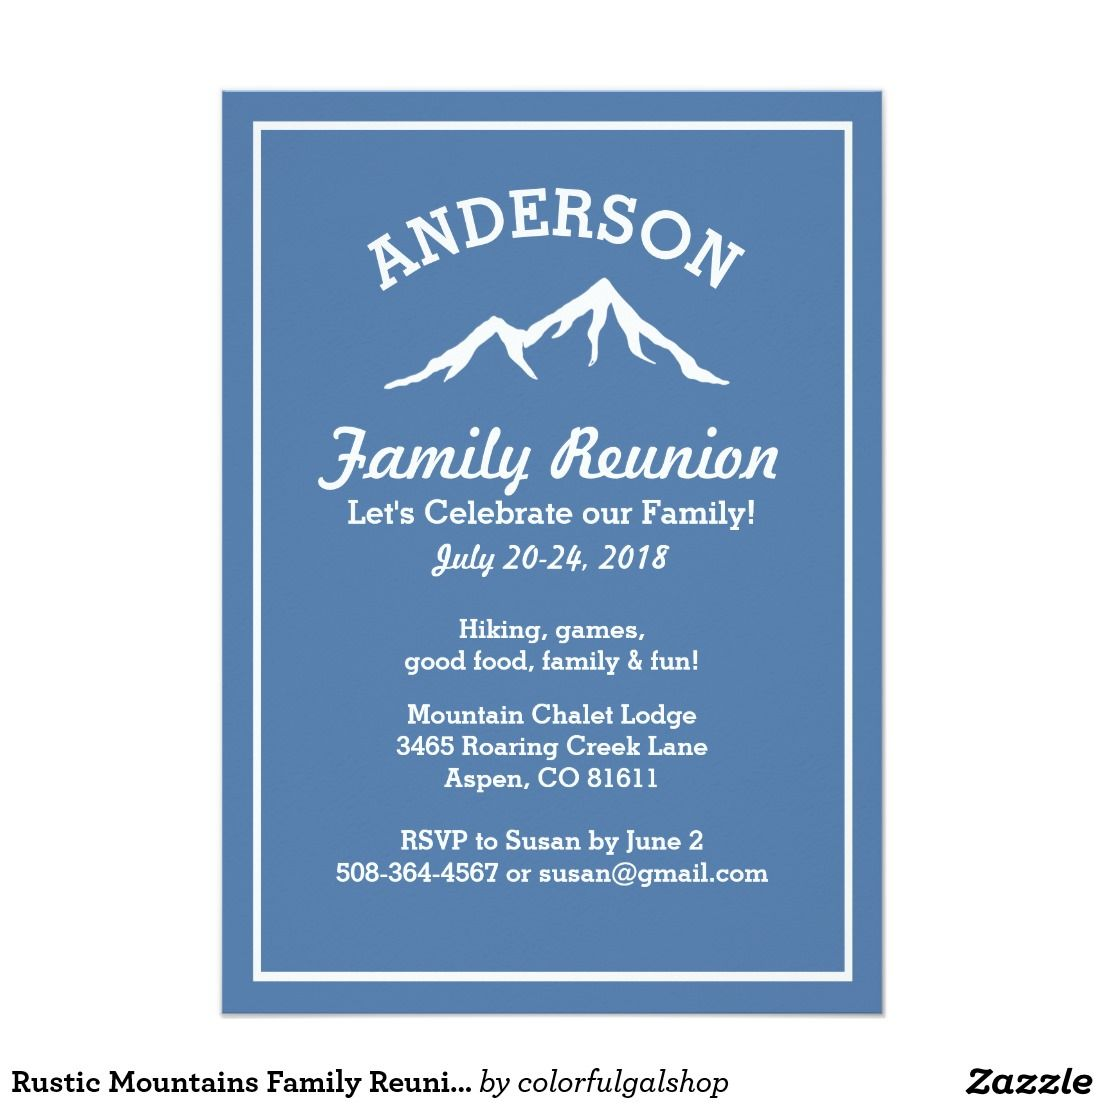 Rustic Mountains Family Reunion Trip Get Together Invitation Zazzle Com Family Reunion Reunion Invitations Family Tree Template